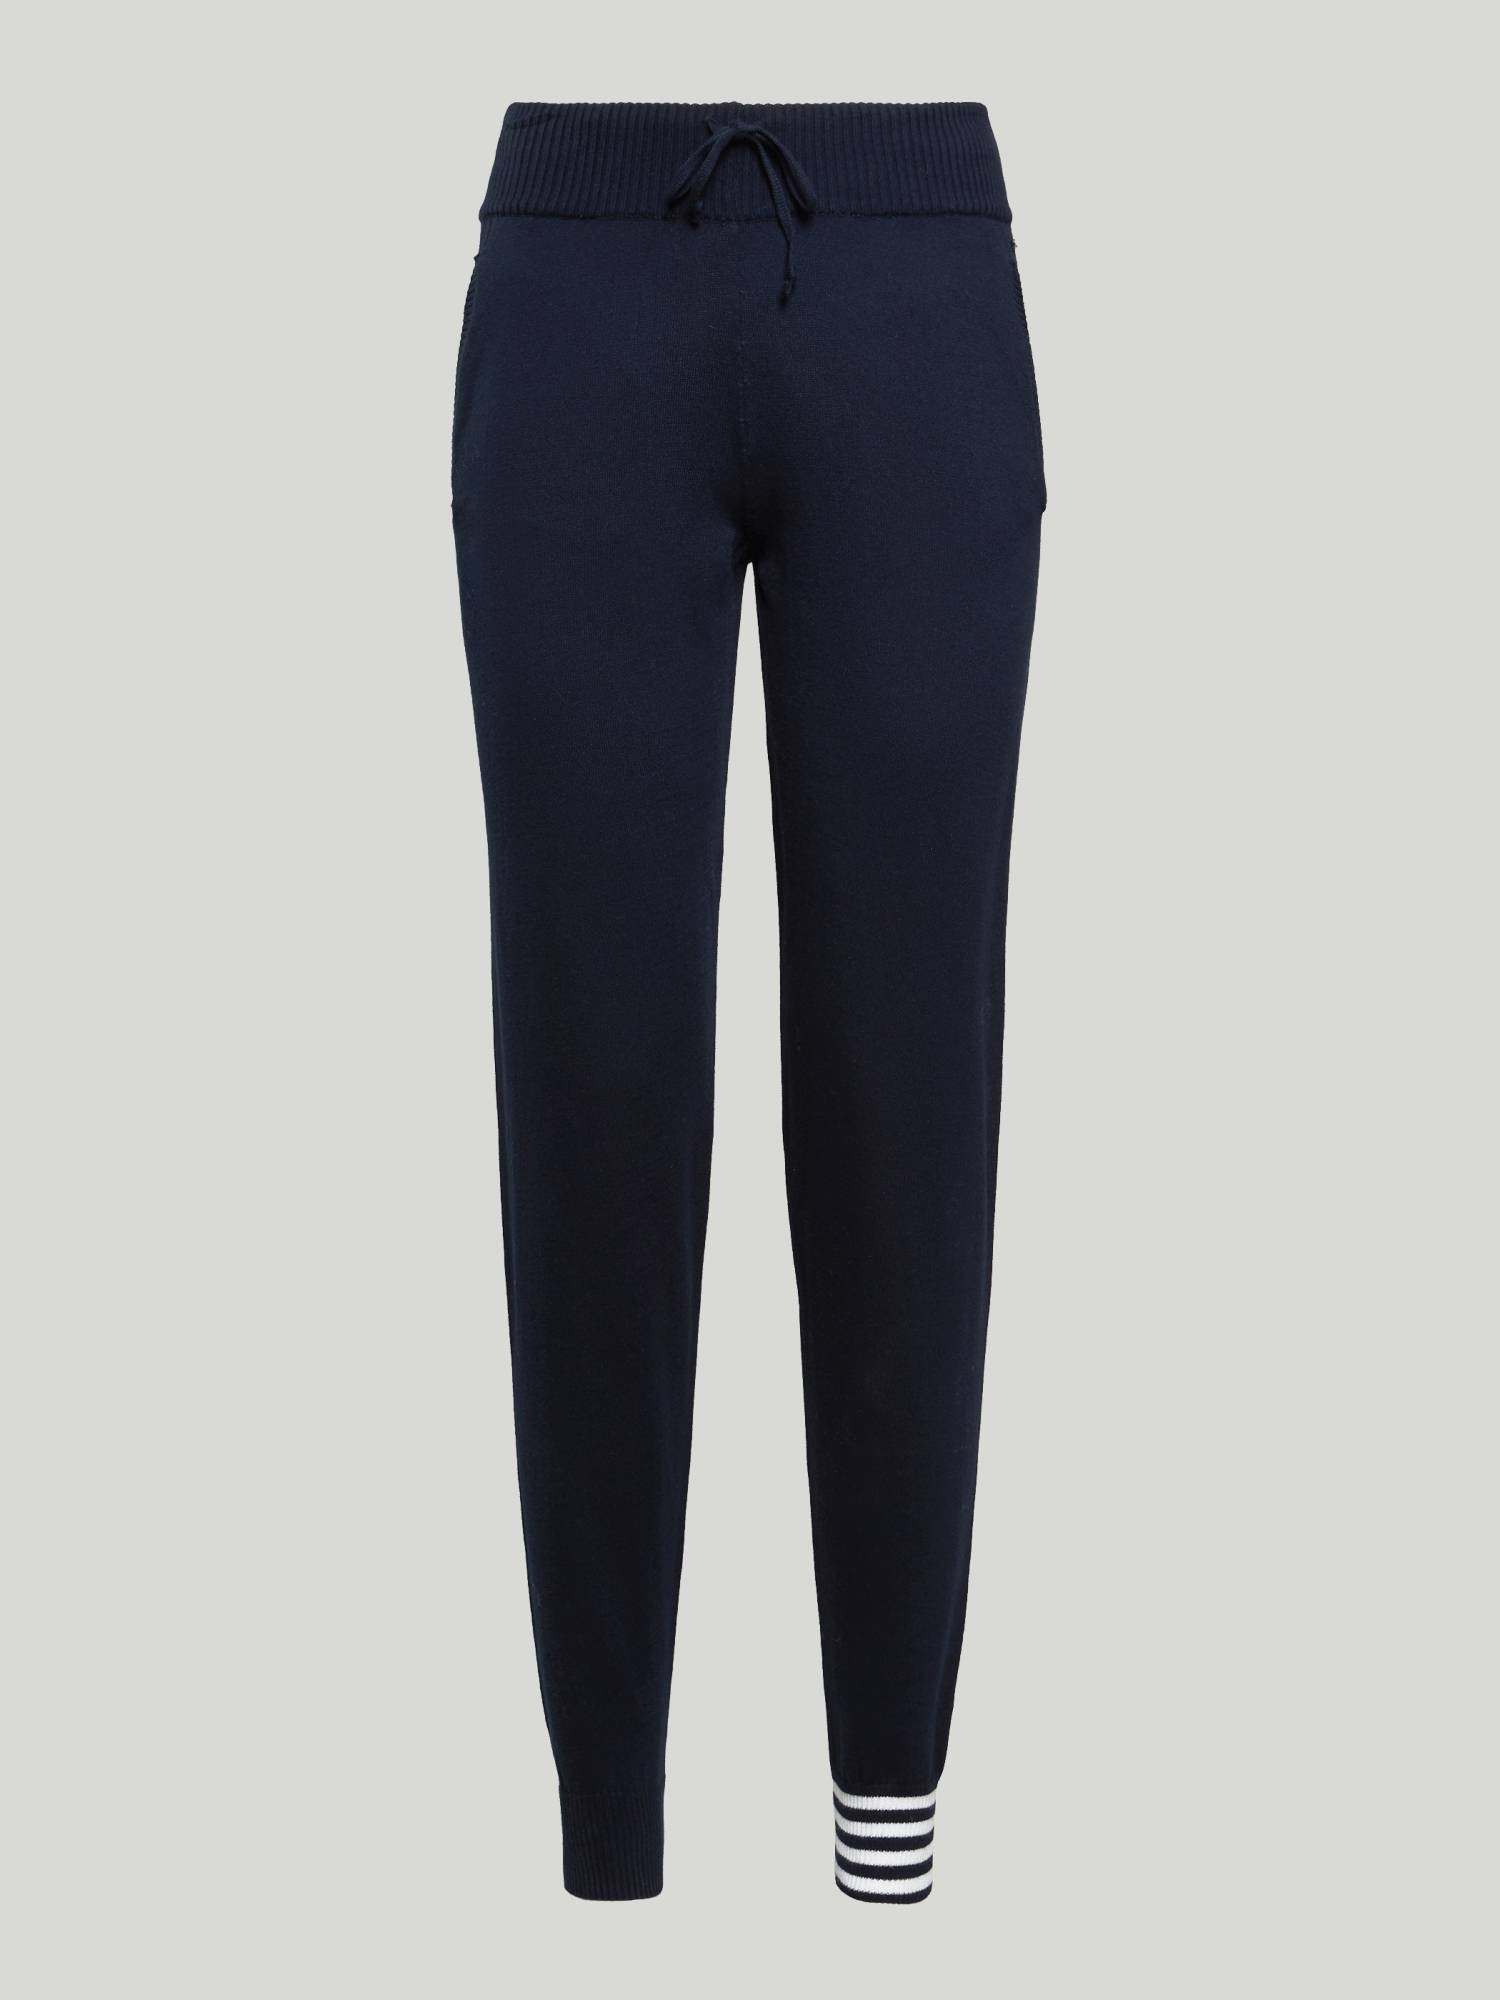 Pants A184 - Marinenblau